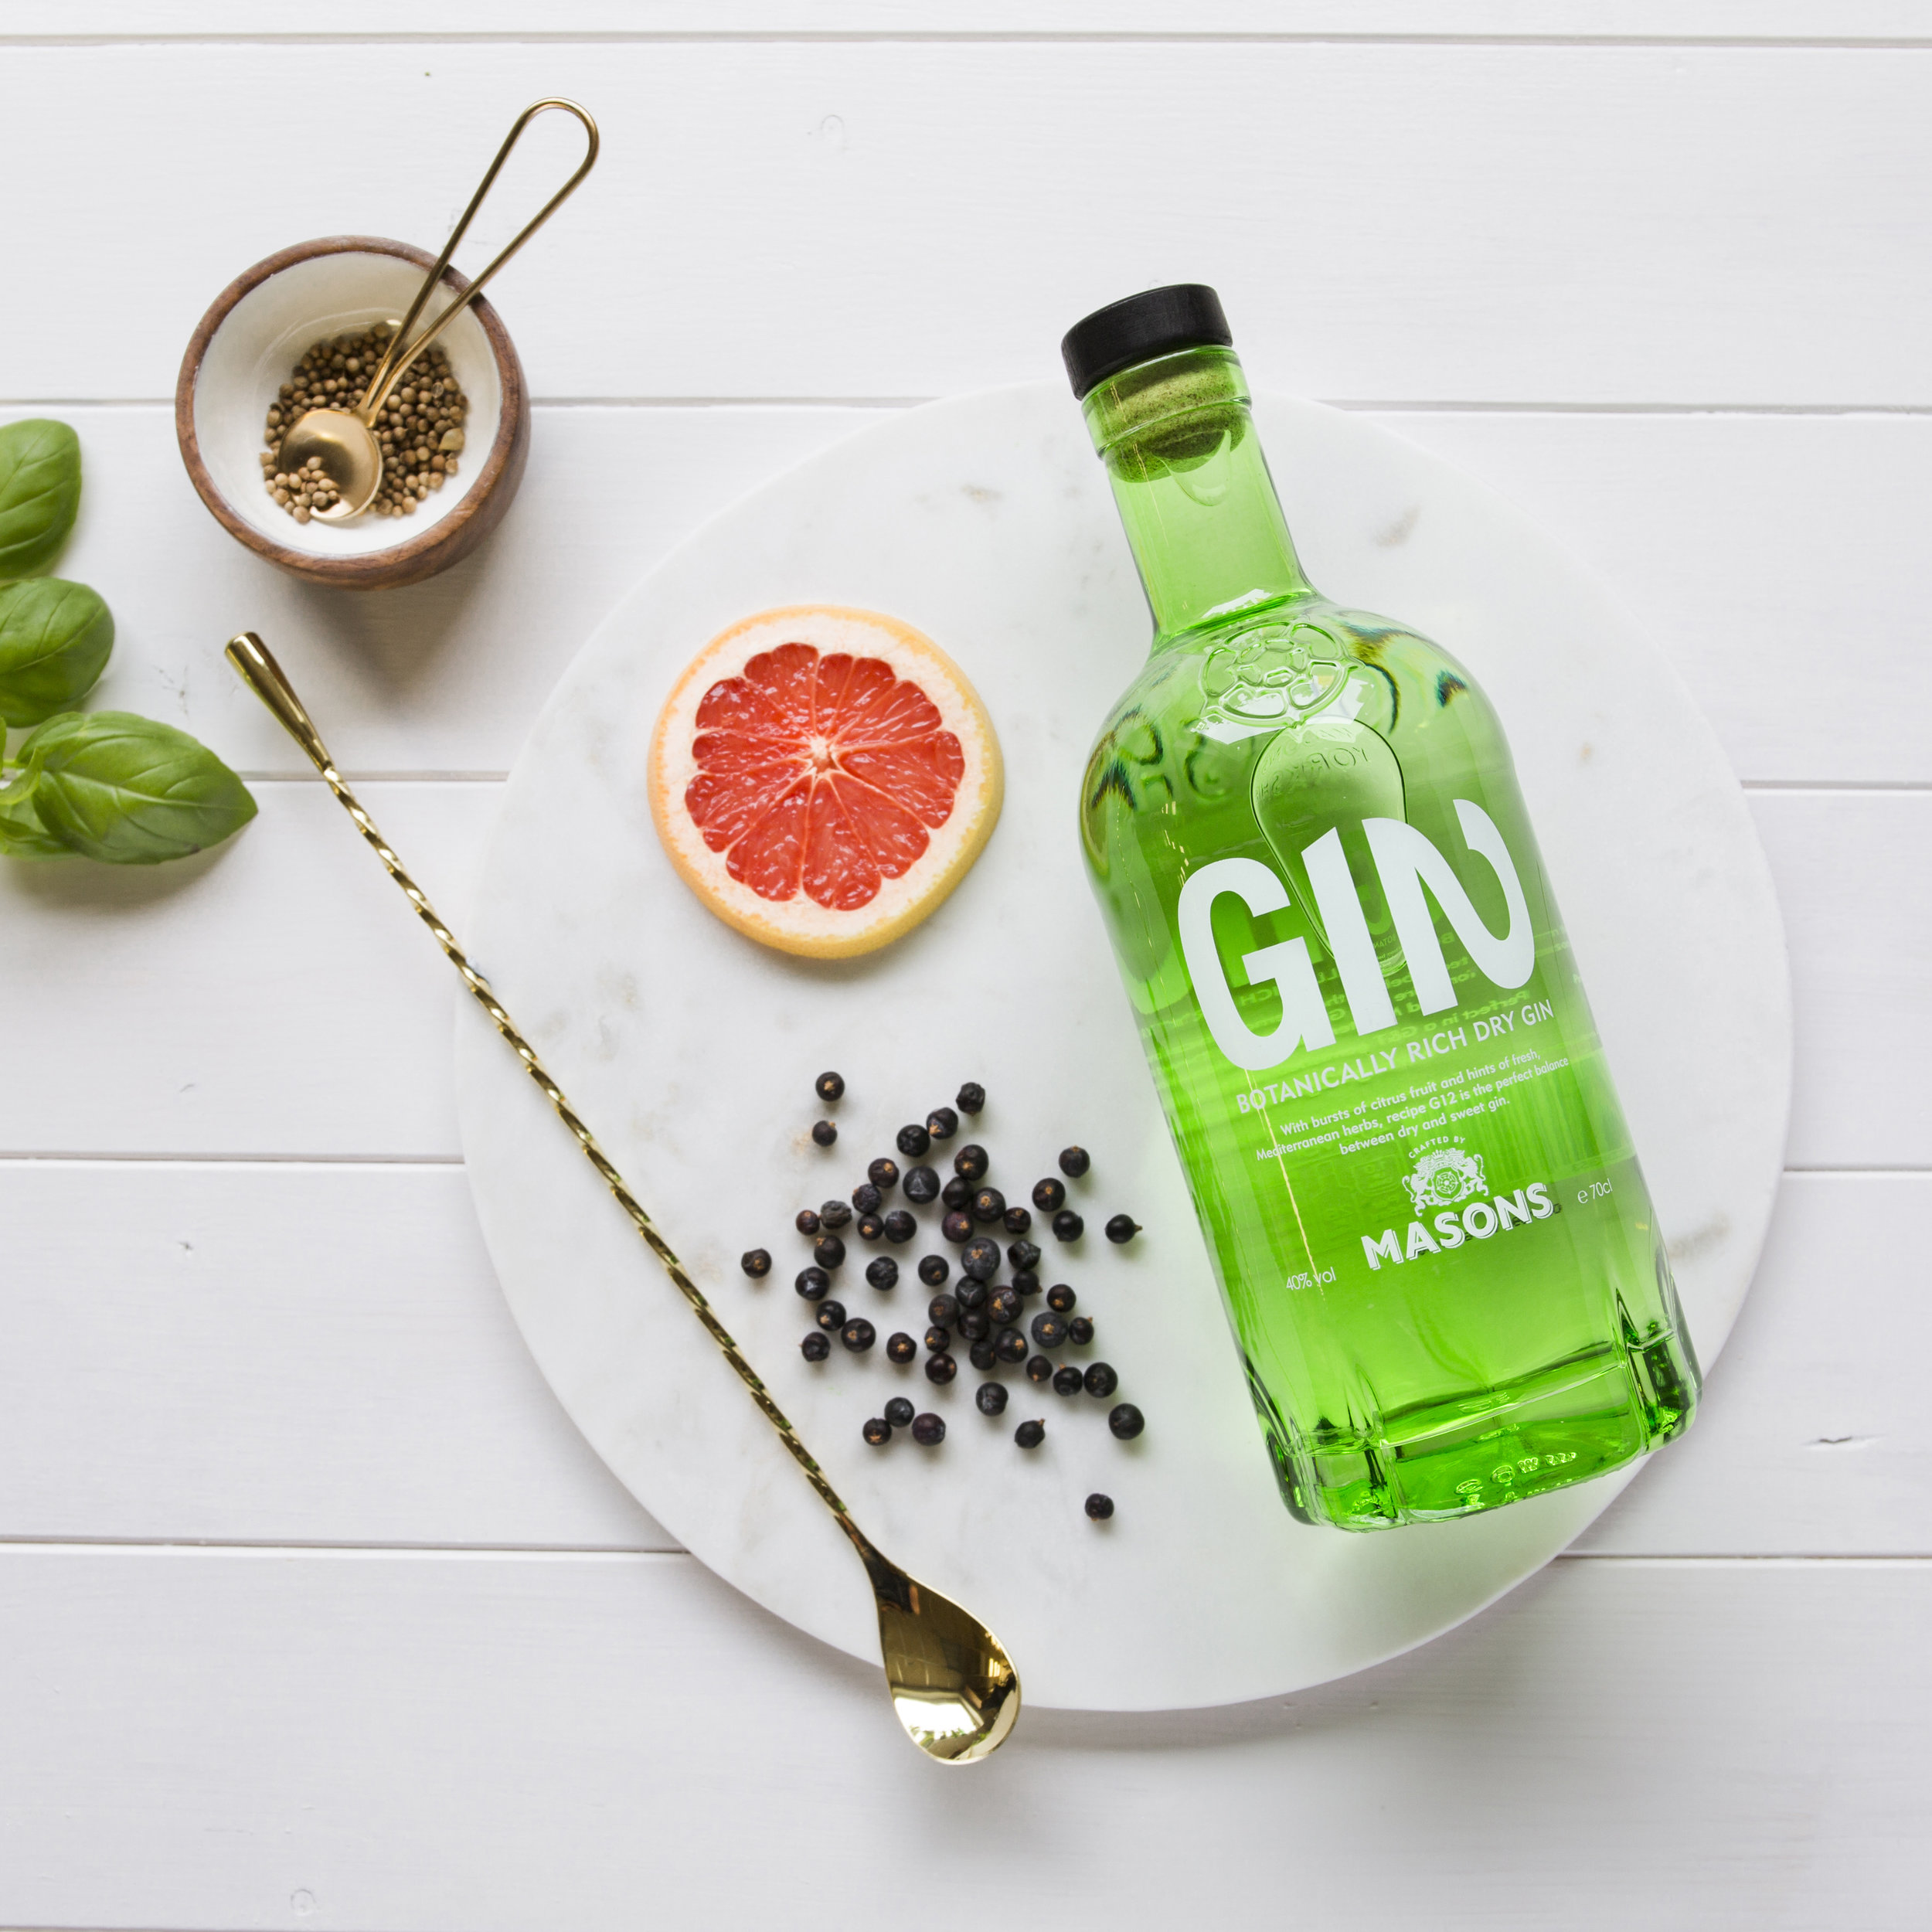 BOTANICALLY RICH DRY GIN - This uniquely refreshing gin offers an aromatic nose of fresh herbs, carefully balanced with subtle notes of juniper. A sharp, citrus start develops on the palate into a long, smooth finish of traditional botanicals and sweet basil.Best served with a premium tonic, plenty of ice and a twist of lime of fresh mint.